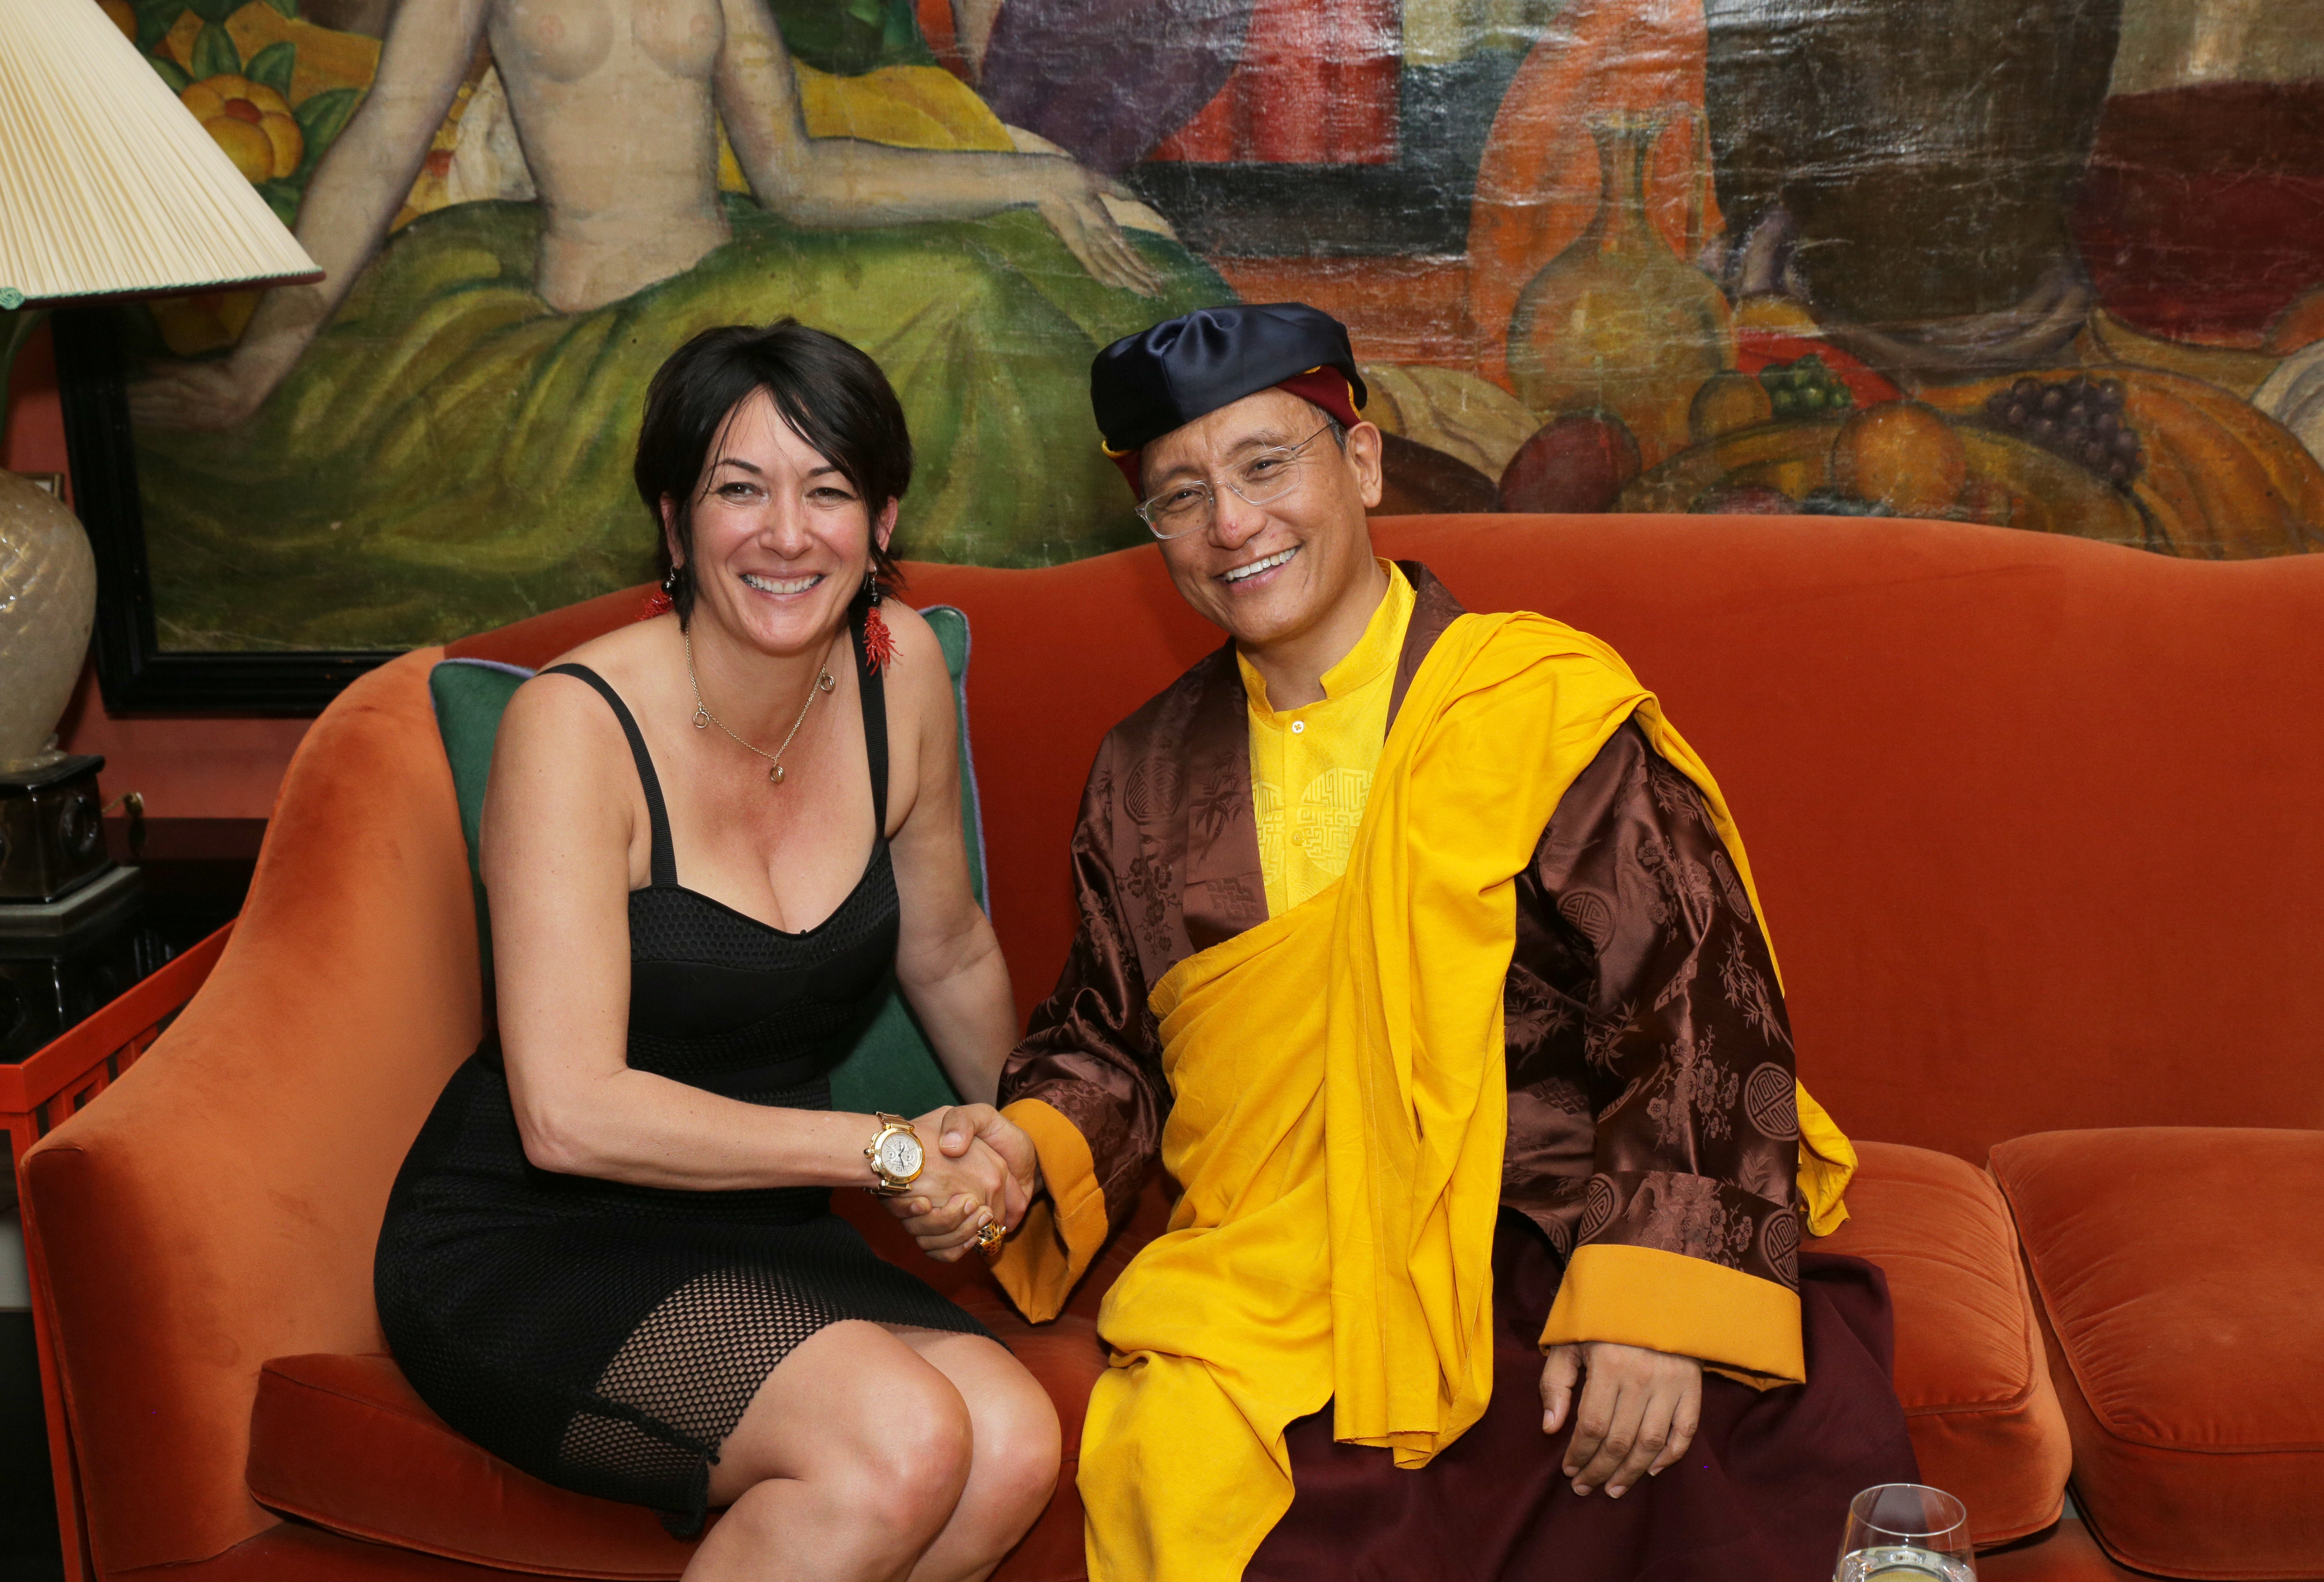 """NEW YORK, NY - JUNE 05: TerraMar's Ghislaine Maxwell (L) and his holiness the Gyalwang Drukpa attend a reception at Ghislaine Maxwell's residence after """"StarTalk Live! Water World"""" Panel Discussion on June 5, 2014 in New York City. (Photo by Andrew Toth/Getty Images)"""